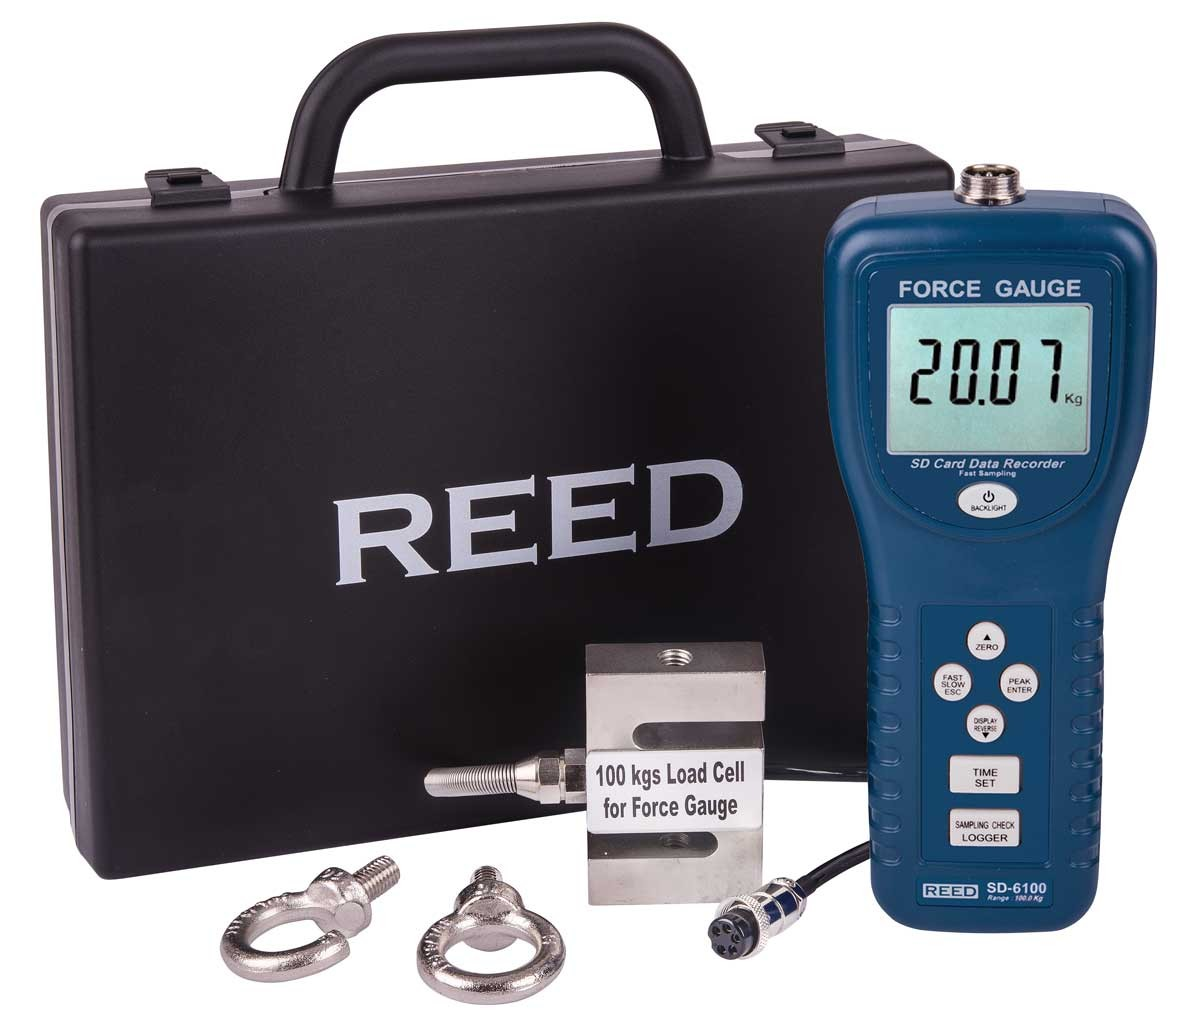 REED SD-6100 Force Gauge/Data Logger, 220 lbs (100 kg)-Included